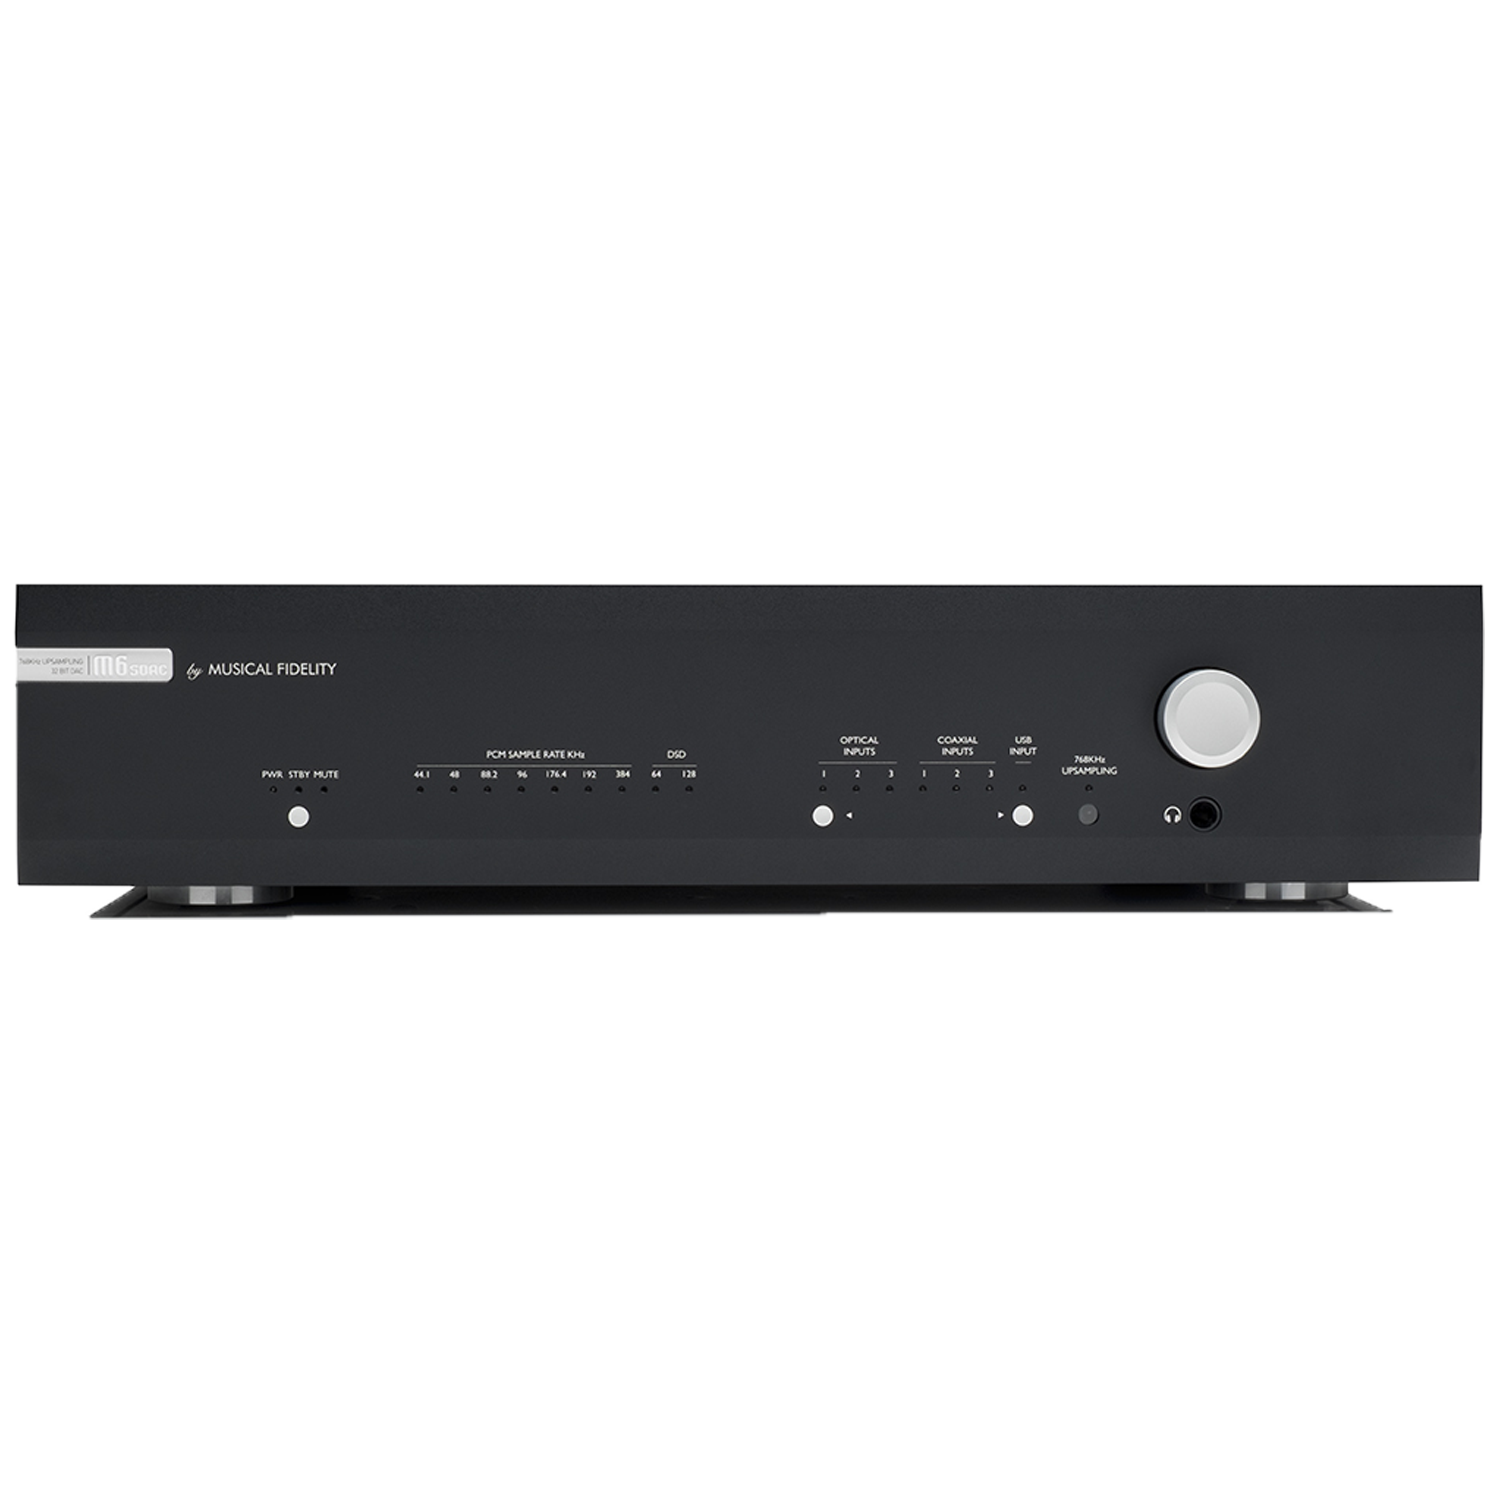 MUSICAL FIDELITY M6S DAC Digital-to-Analog Converter Black